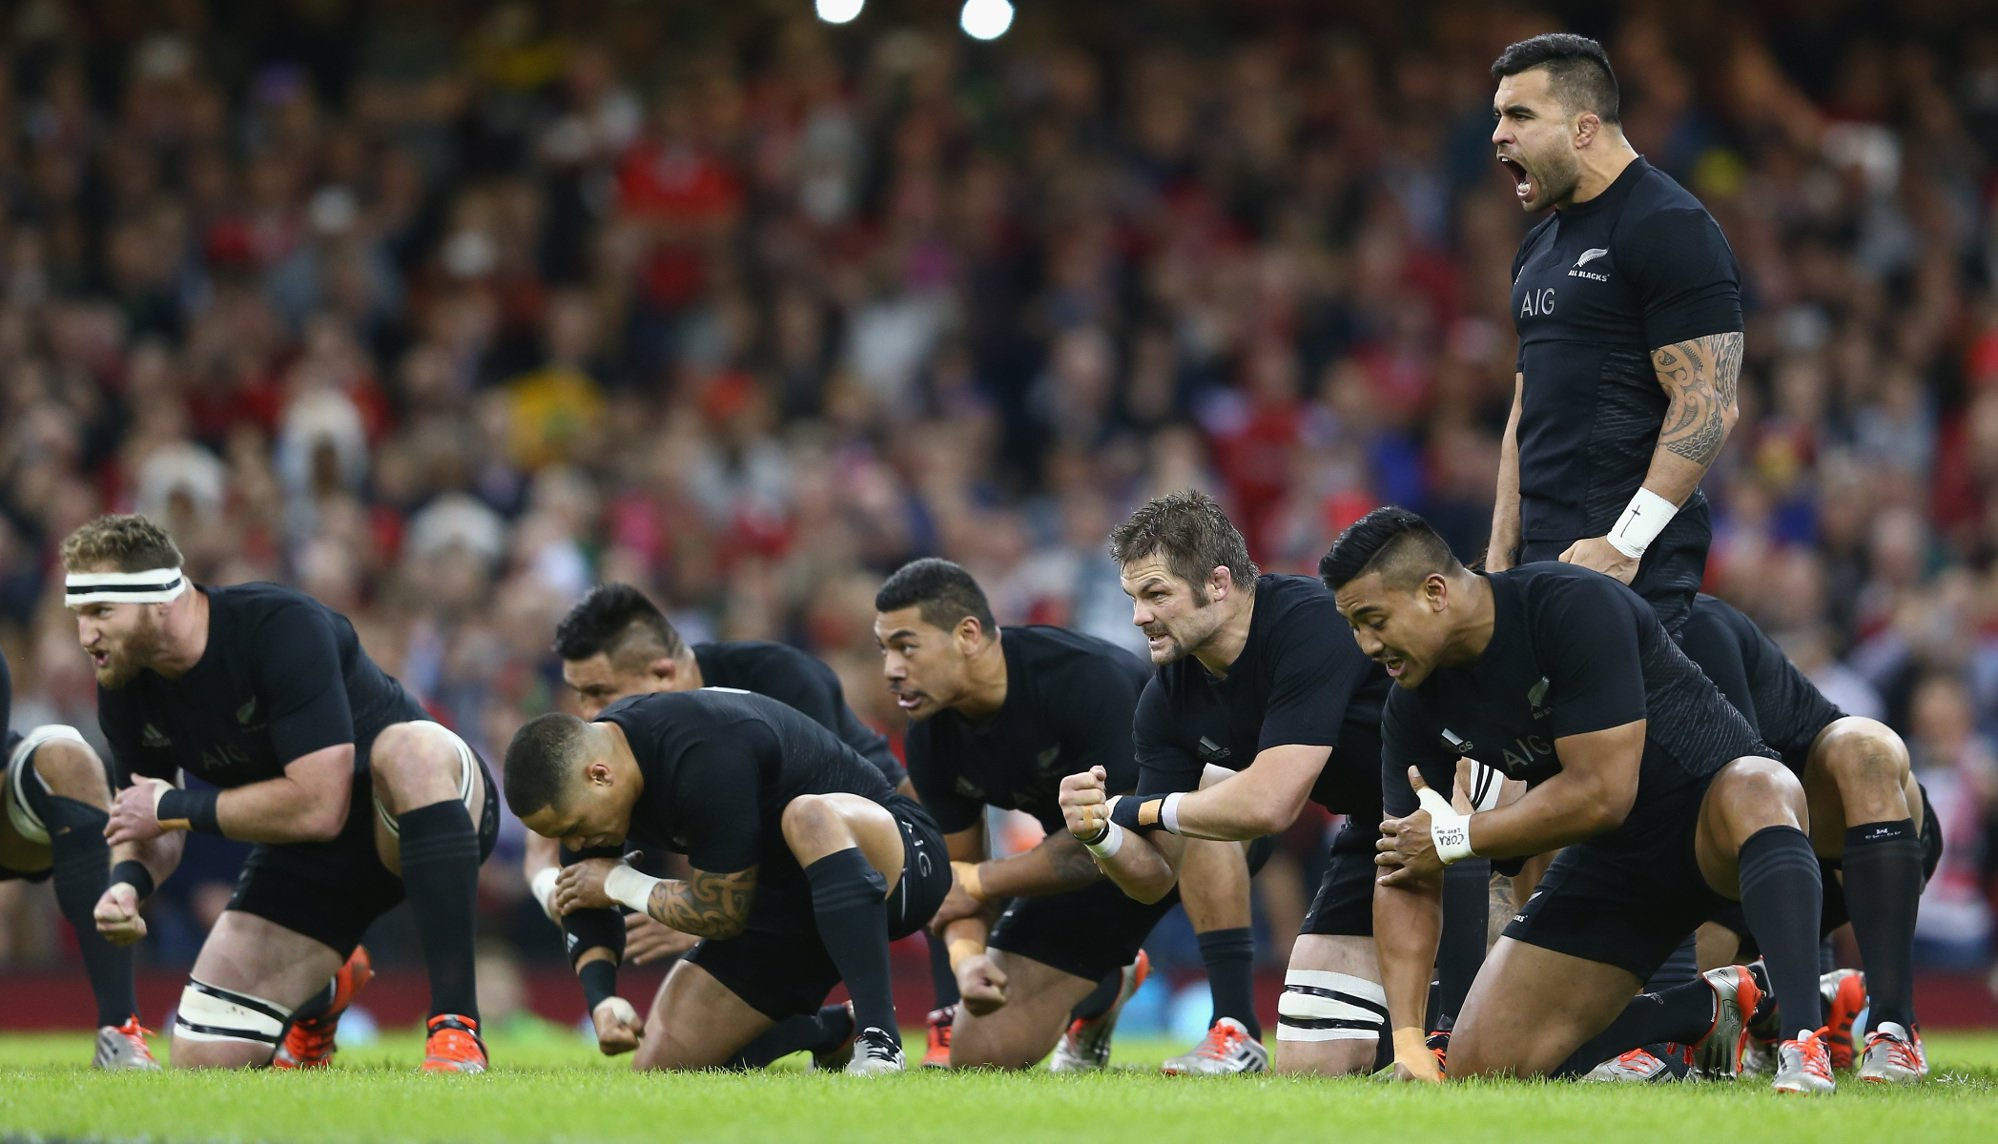 New Zealand Rugby vetting plans scream of arrogance